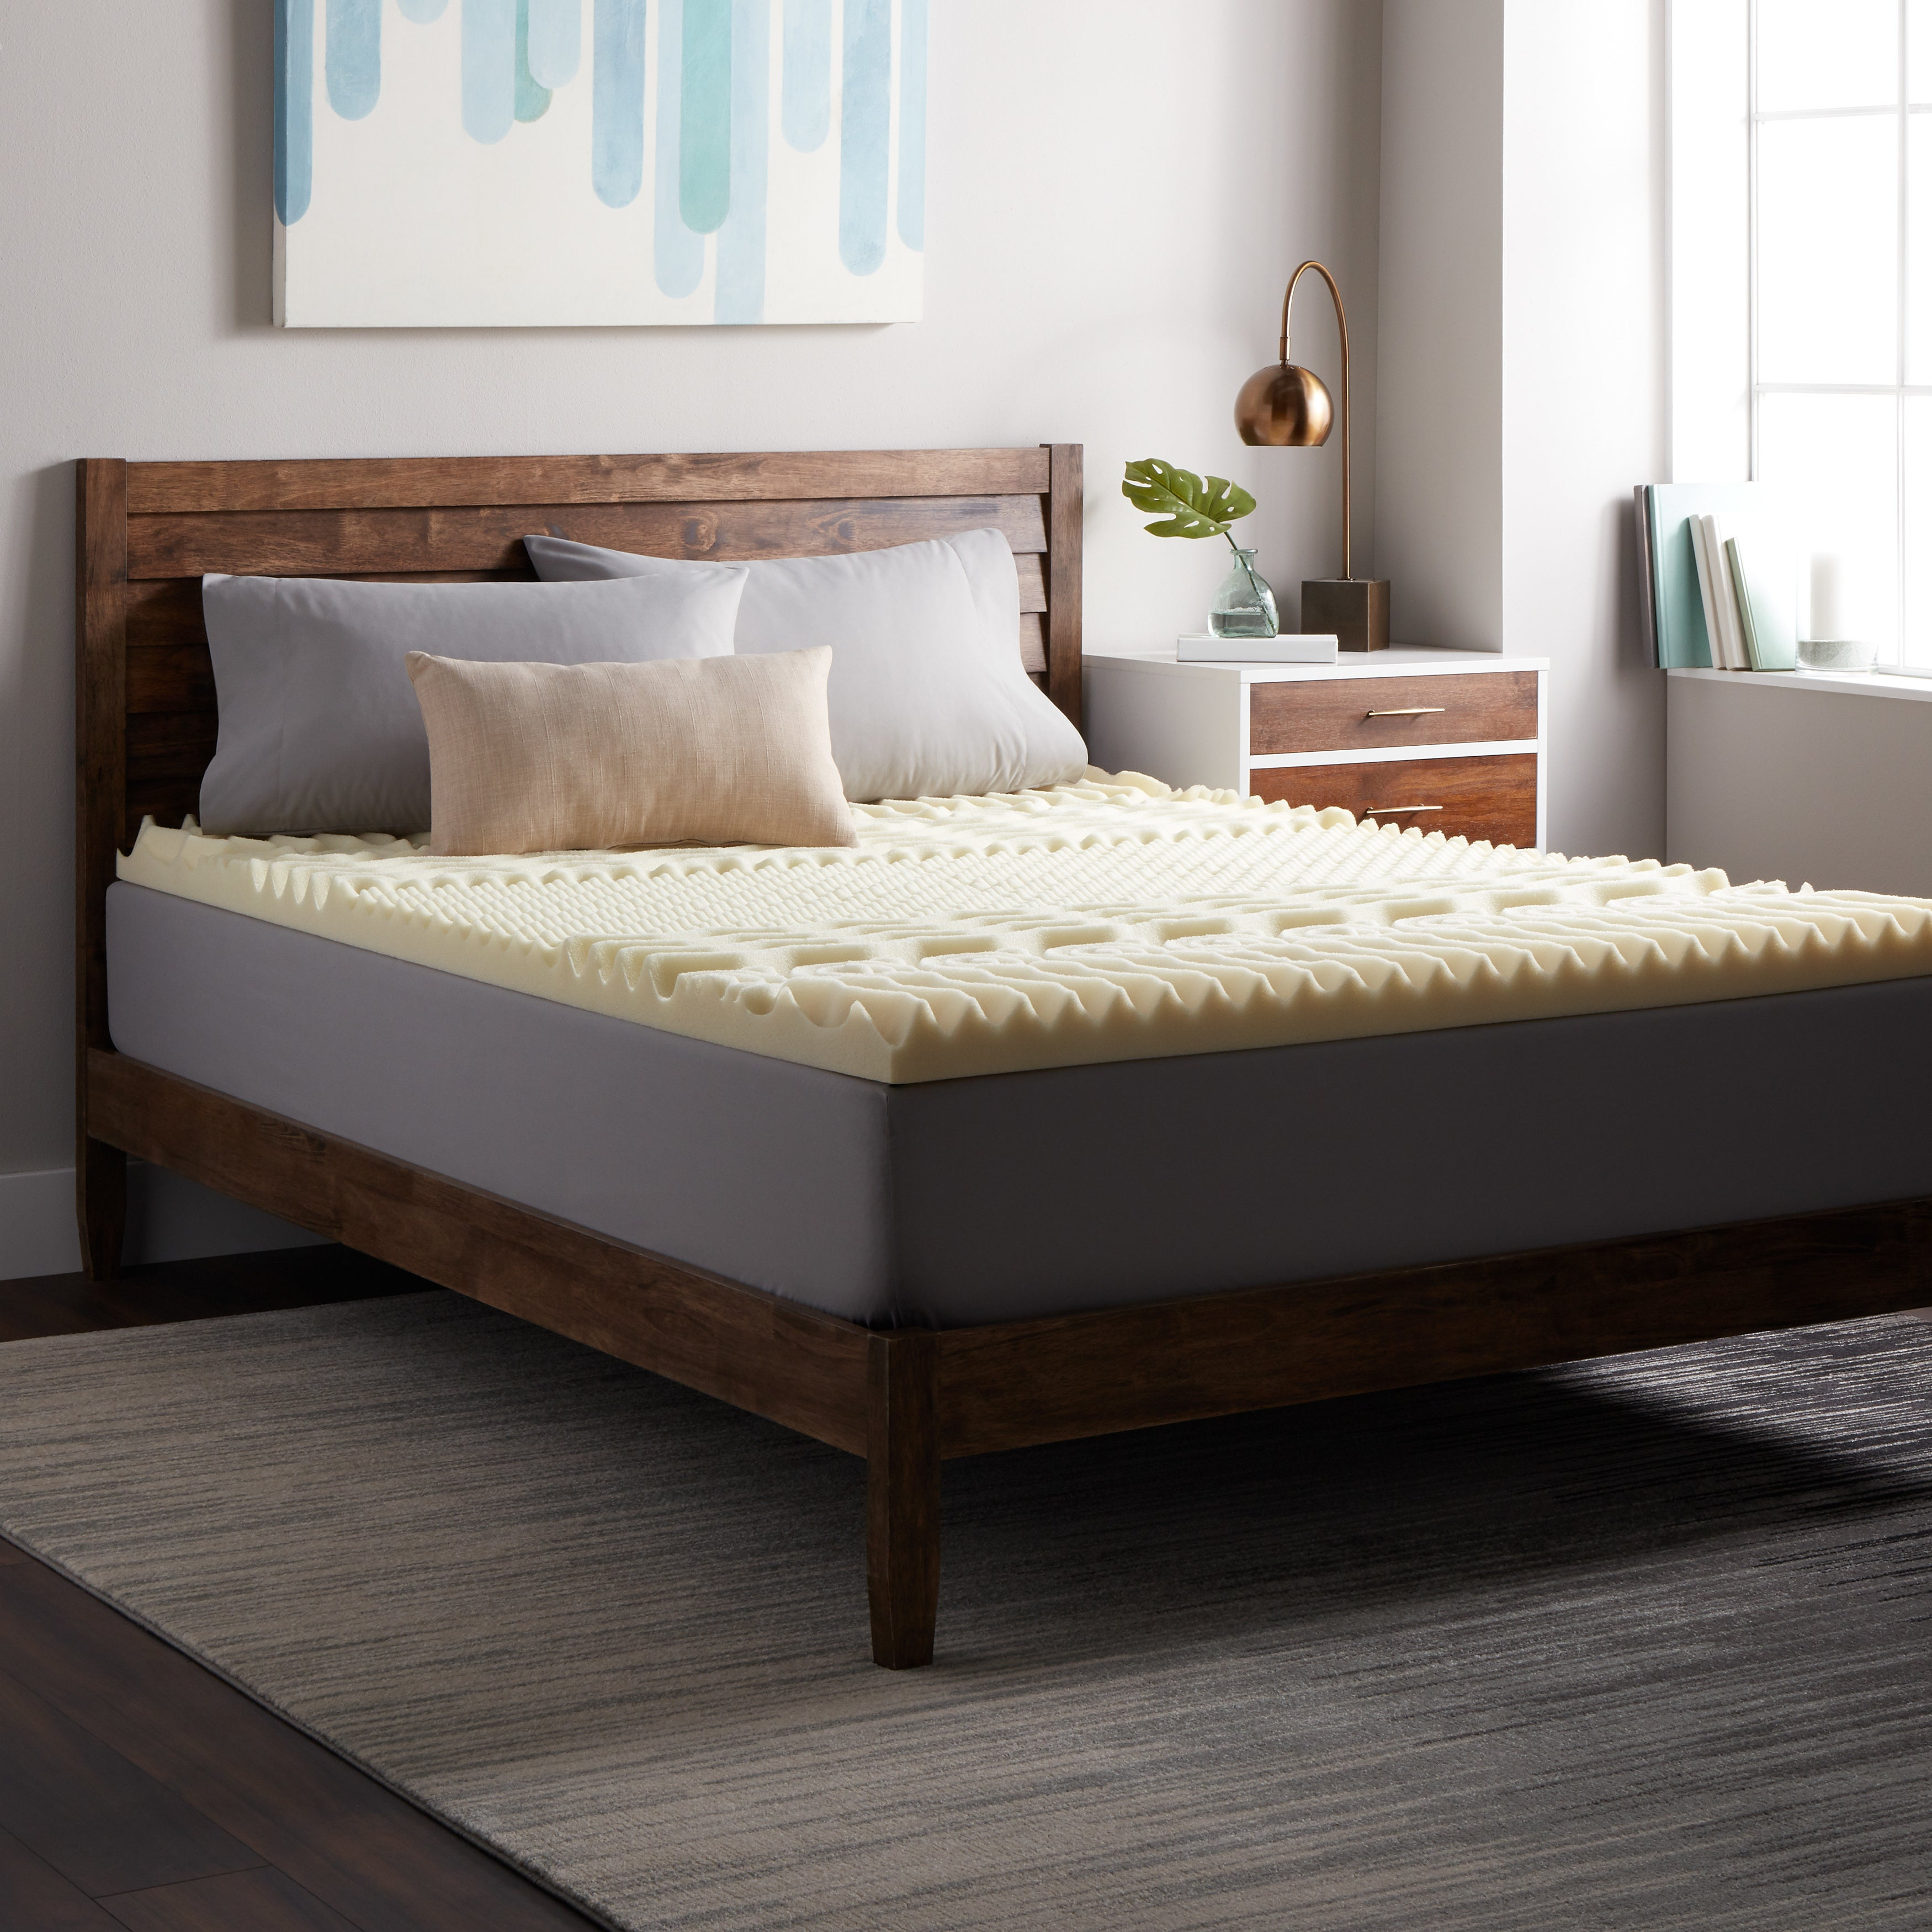 Select Luxury 3-inch Memory Foam 7-zone Mattress Topper at Sears.com